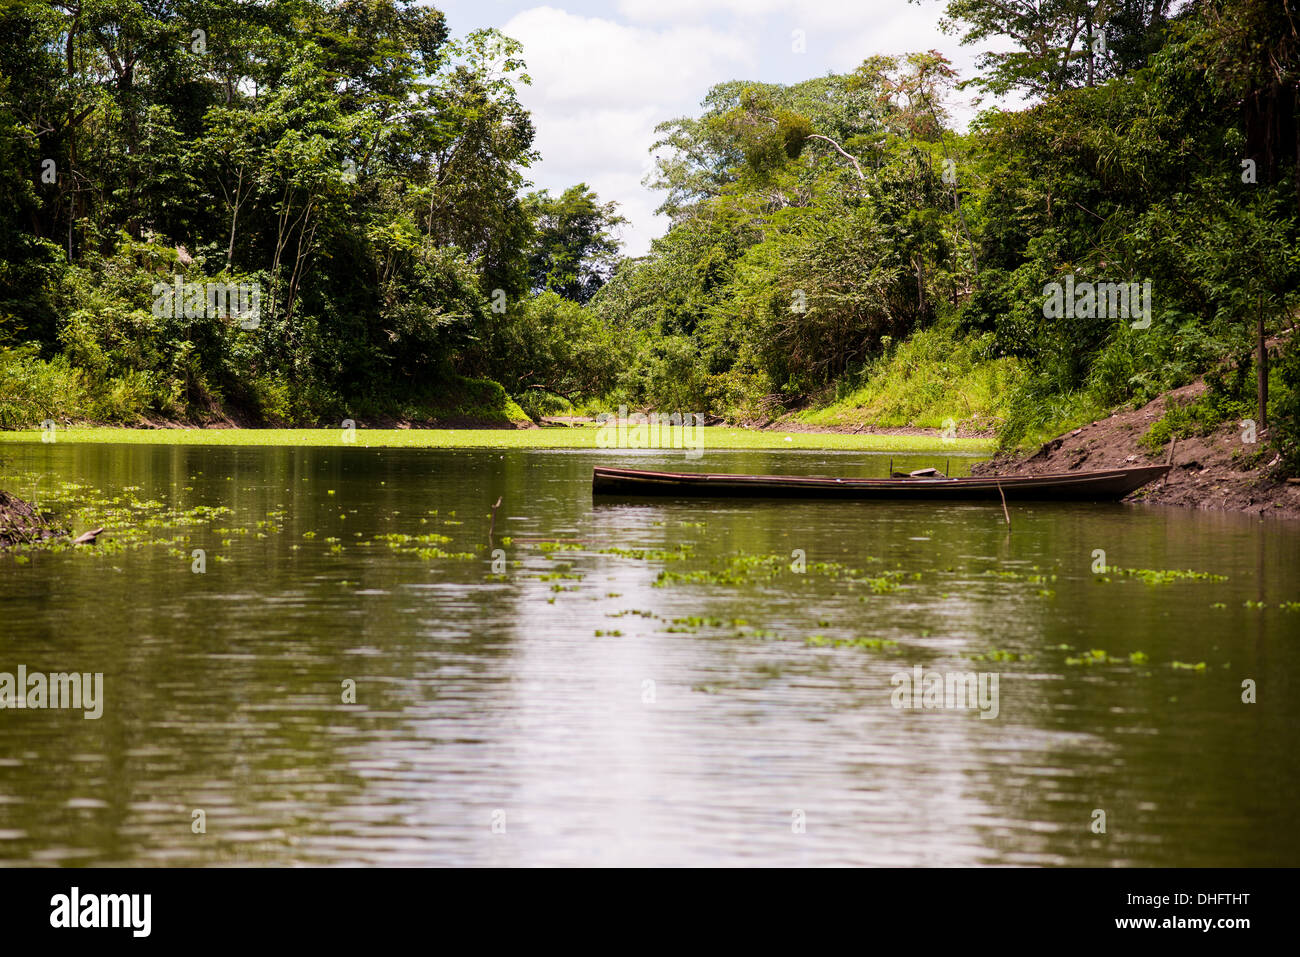 A canoe on an inlet off of Lake Yarinacocha in Pucallpa, Peru, - part of the river Ucayali, which flows into the Amazon river. - Stock Image